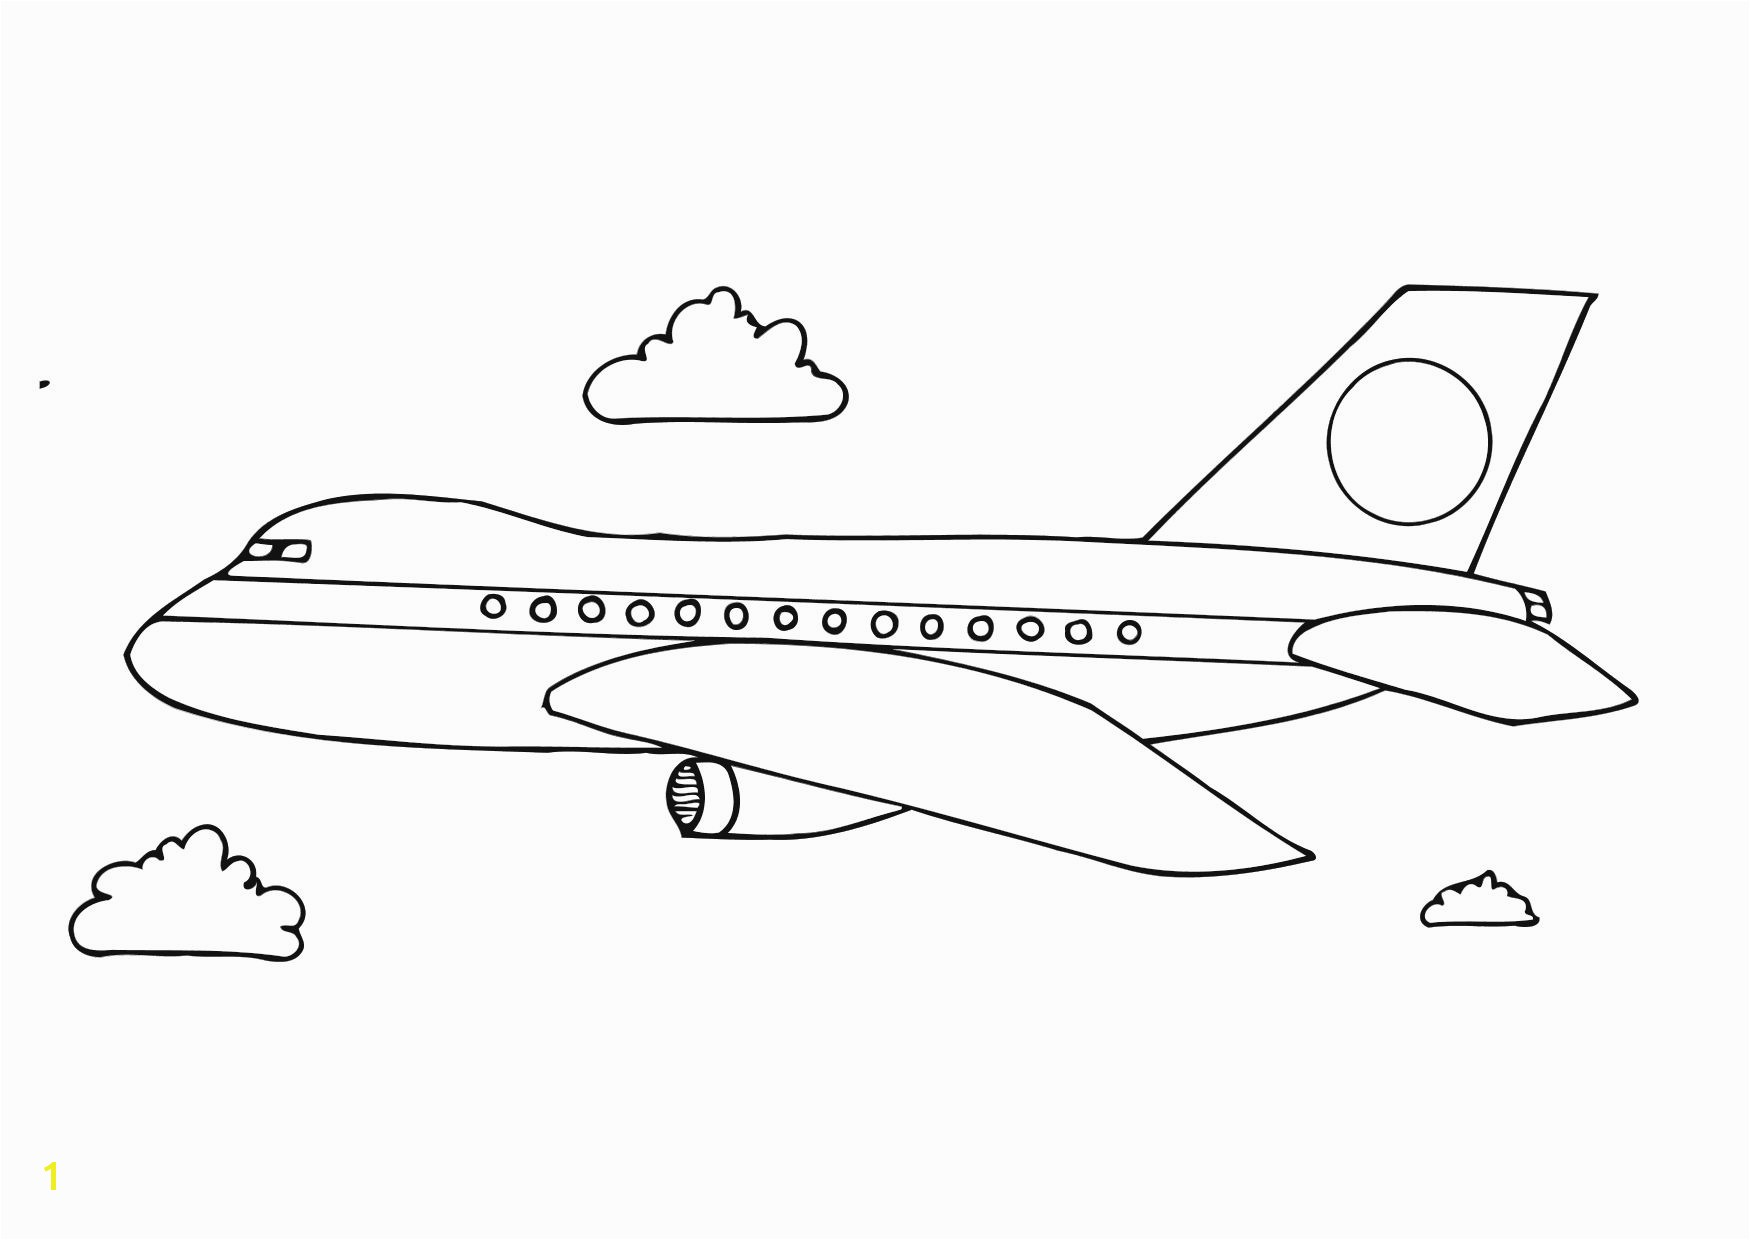 s of Airplane Coloring Pages